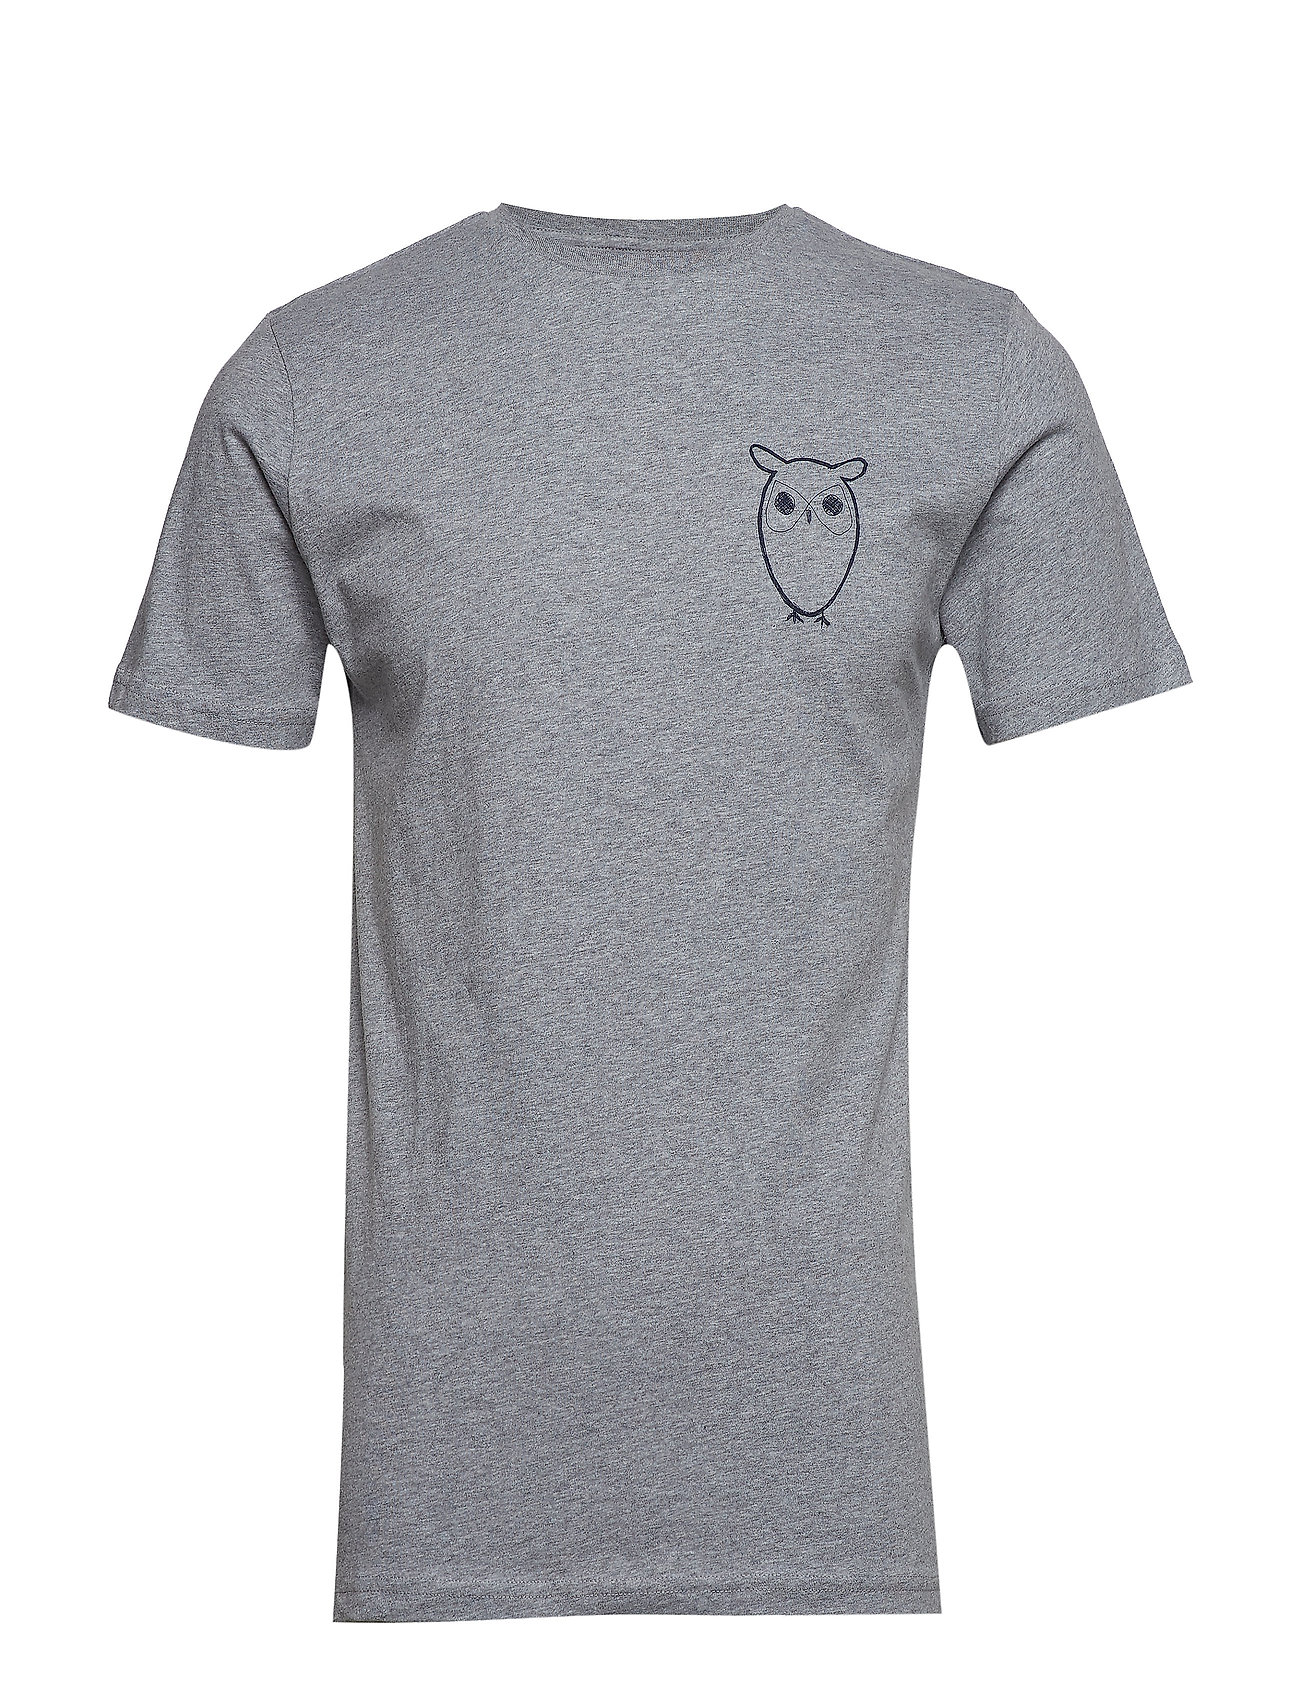 Image of T-Shirt With Owl Chest Logo - Gots T-shirt Grå Knowledge Cotton Apparel (3169766237)